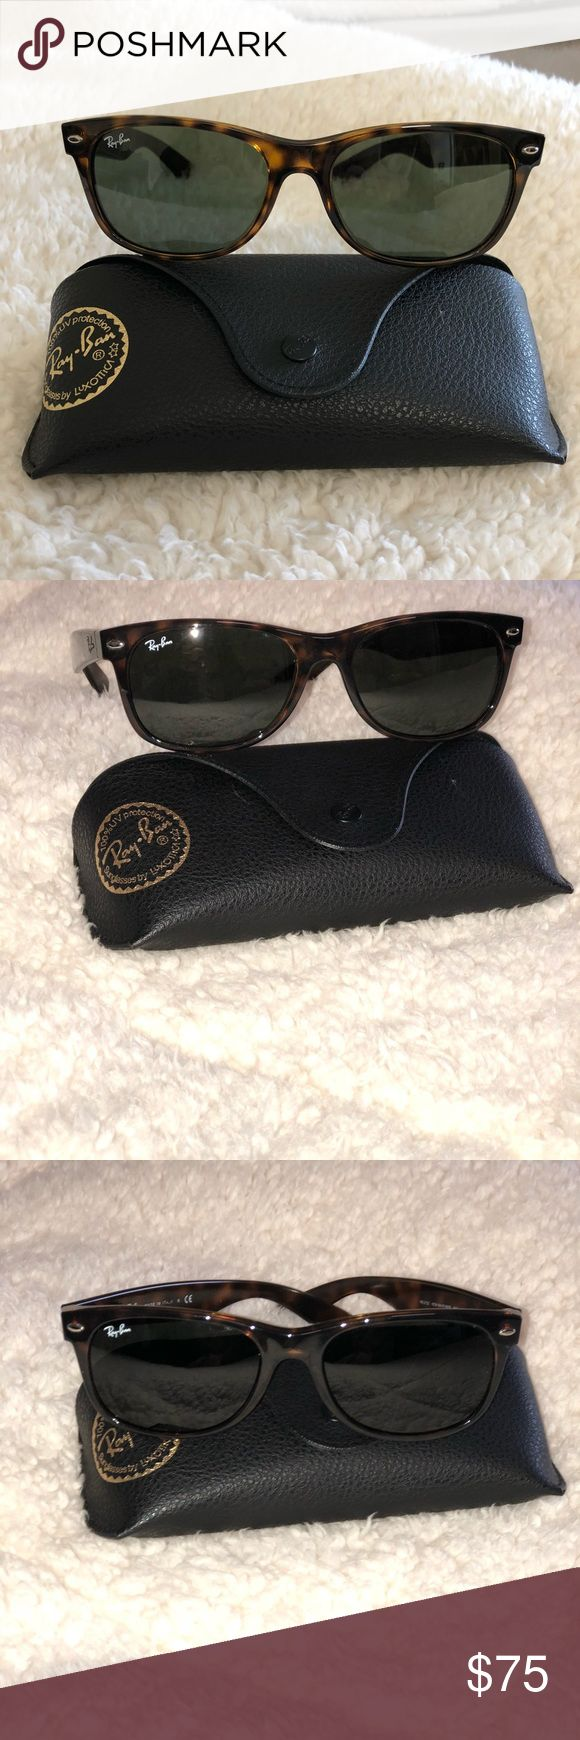 Ray-Ban Wayfarer Women's wayfarer sunglasses in brown. No scratches. In excellent condition. Will include original case. RB2132 Ray-Ban Accessories Glasses